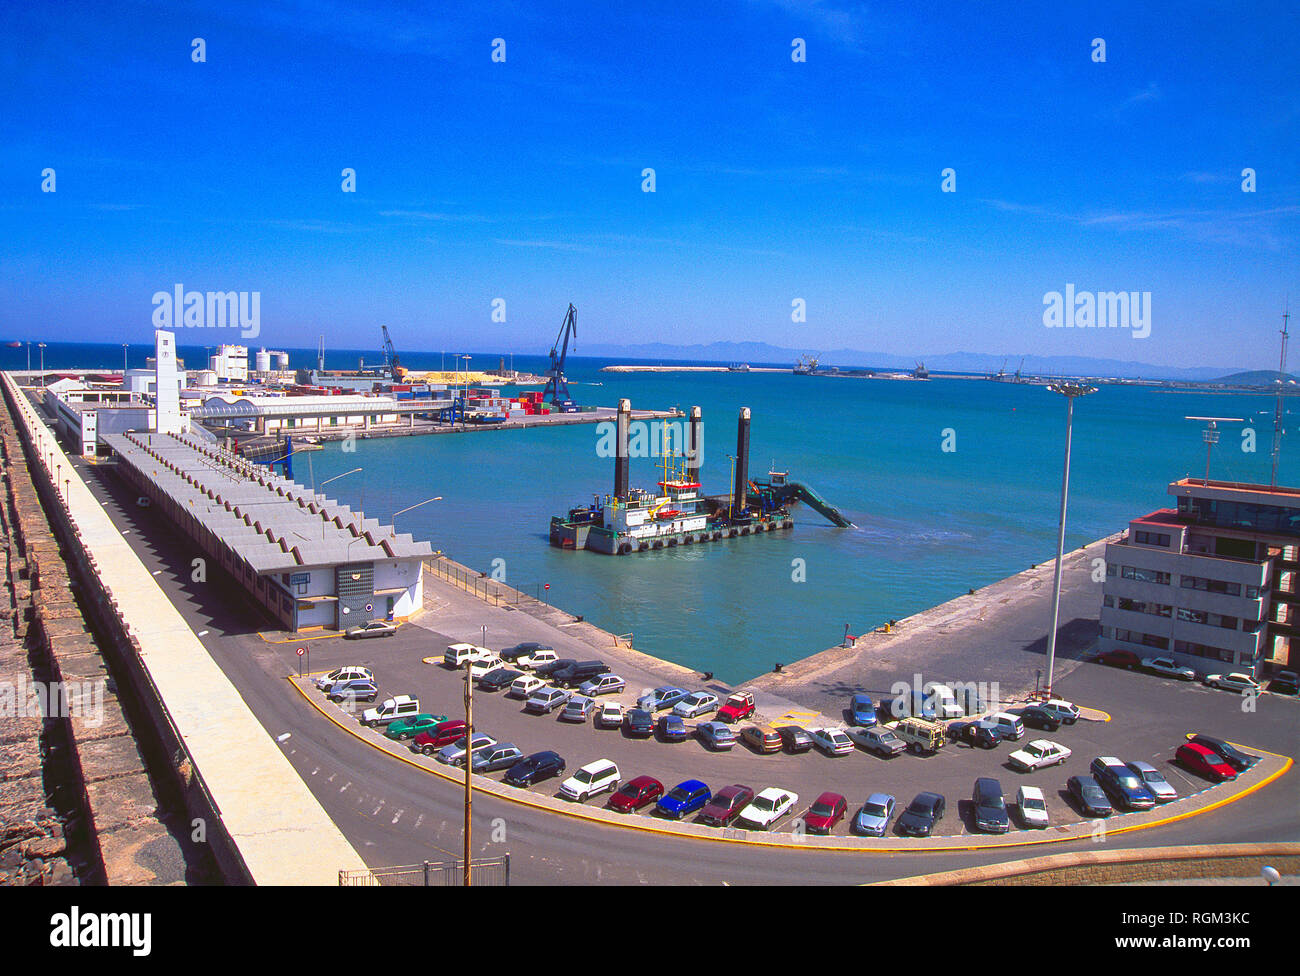 Dredge working in the harbour. Melilla, Spain. - Stock Image